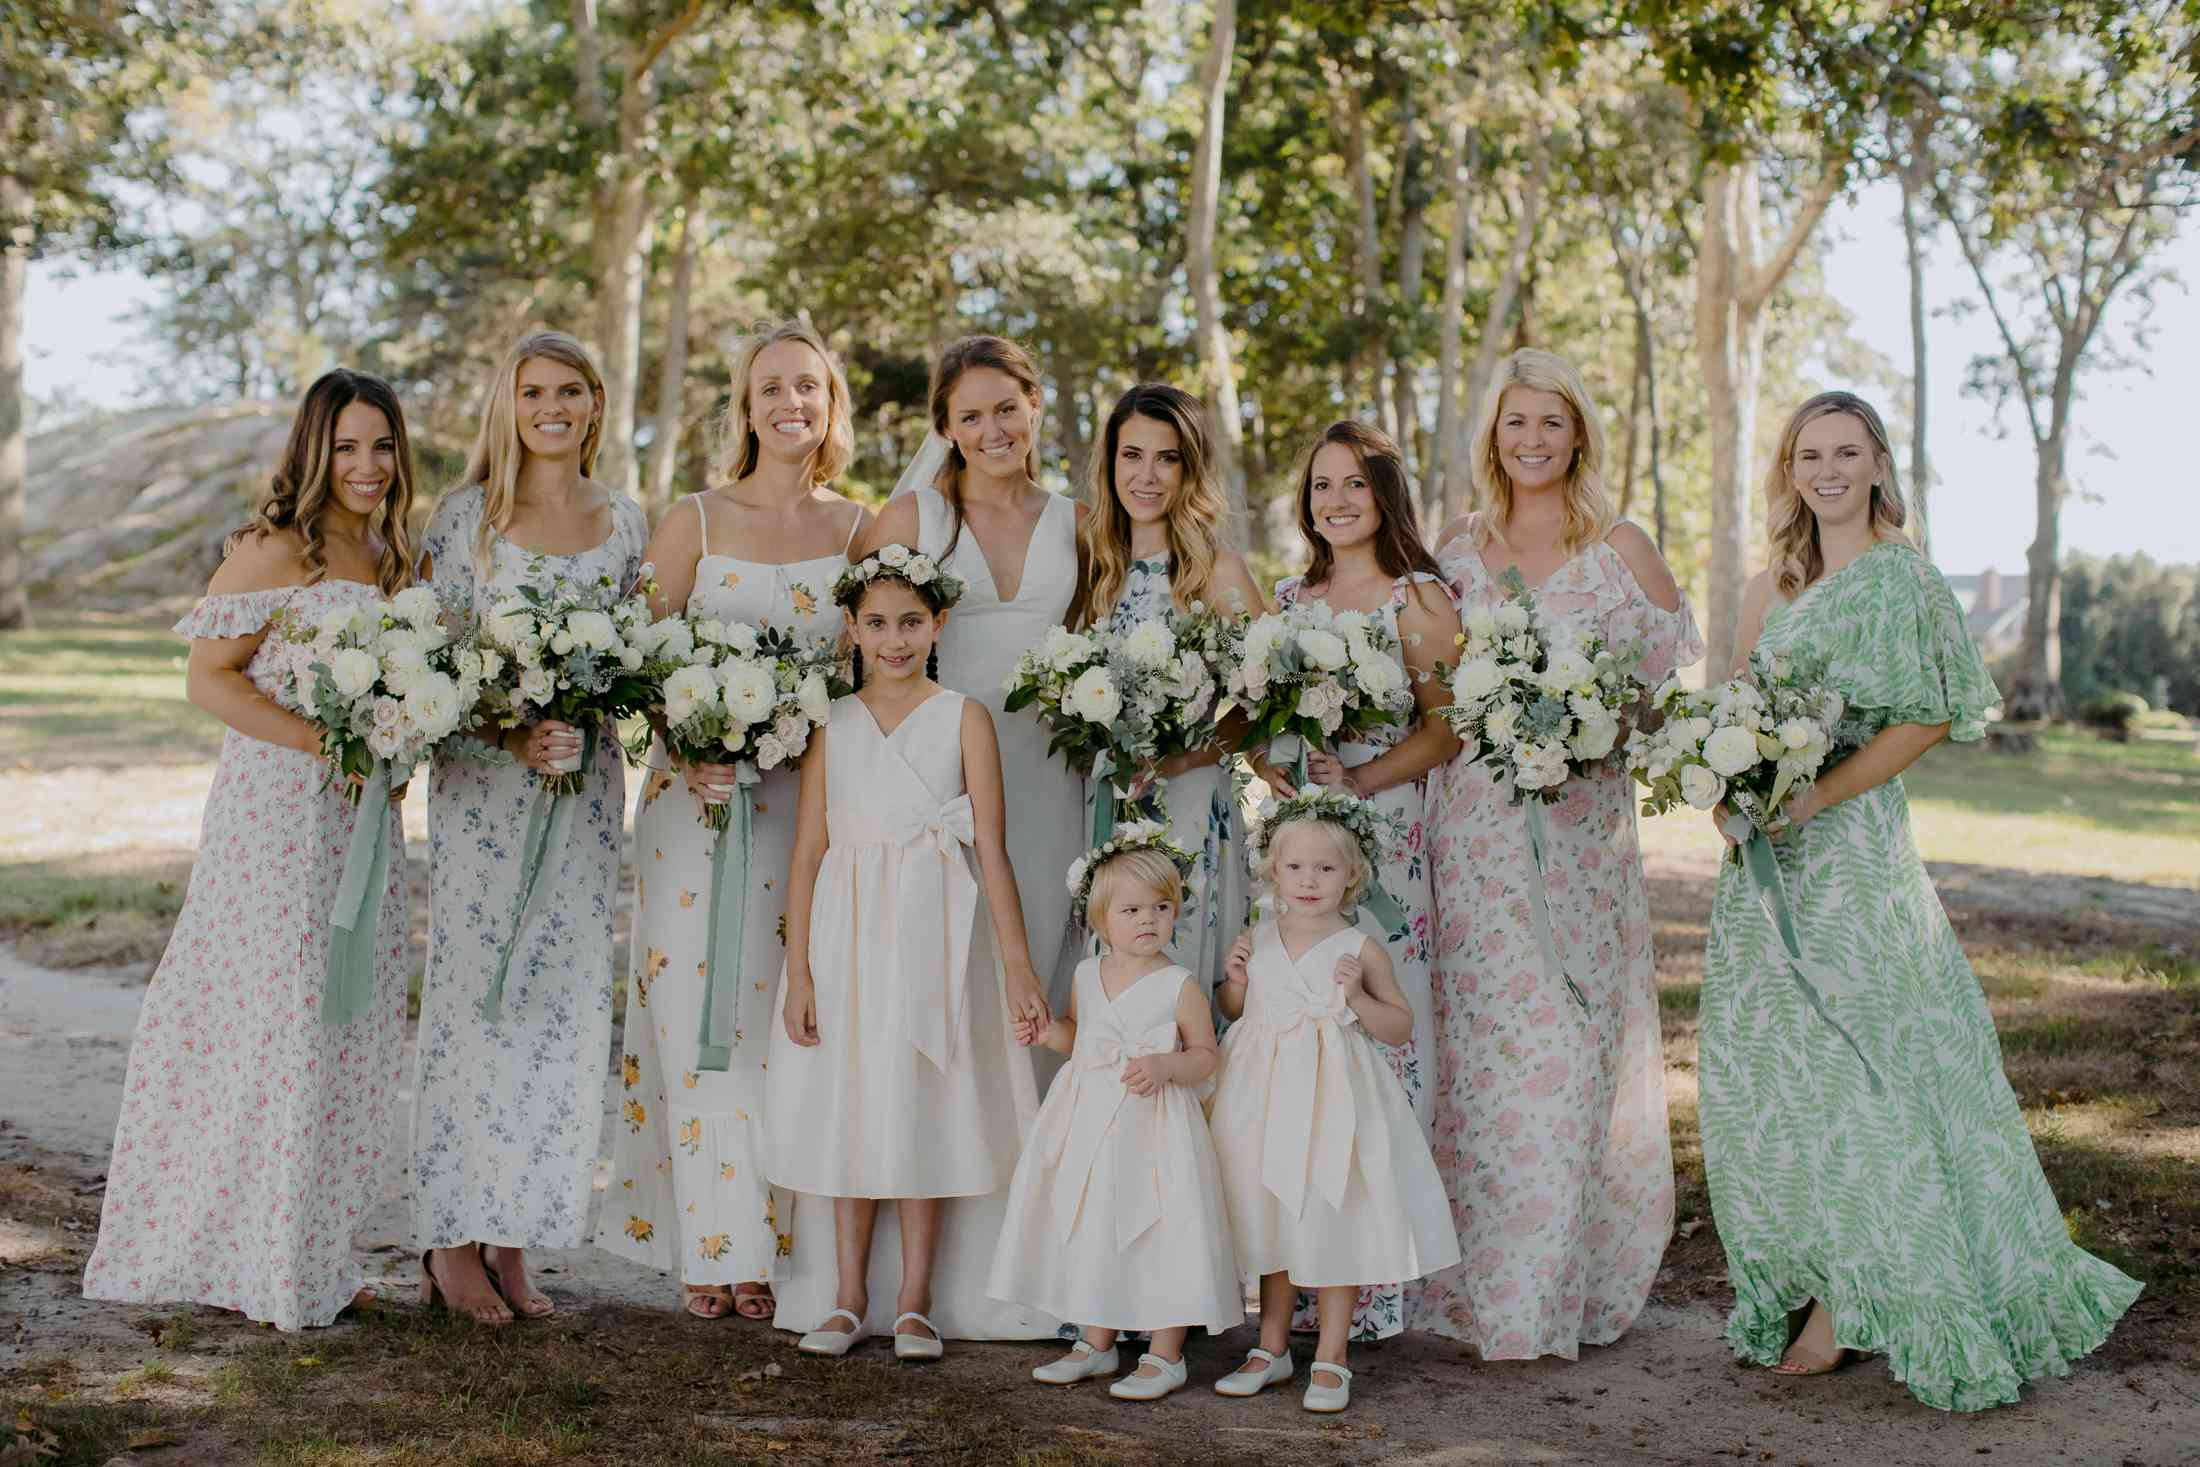 at-home rustic massachusetts wedding, bride with bridesmaids in floral dresses